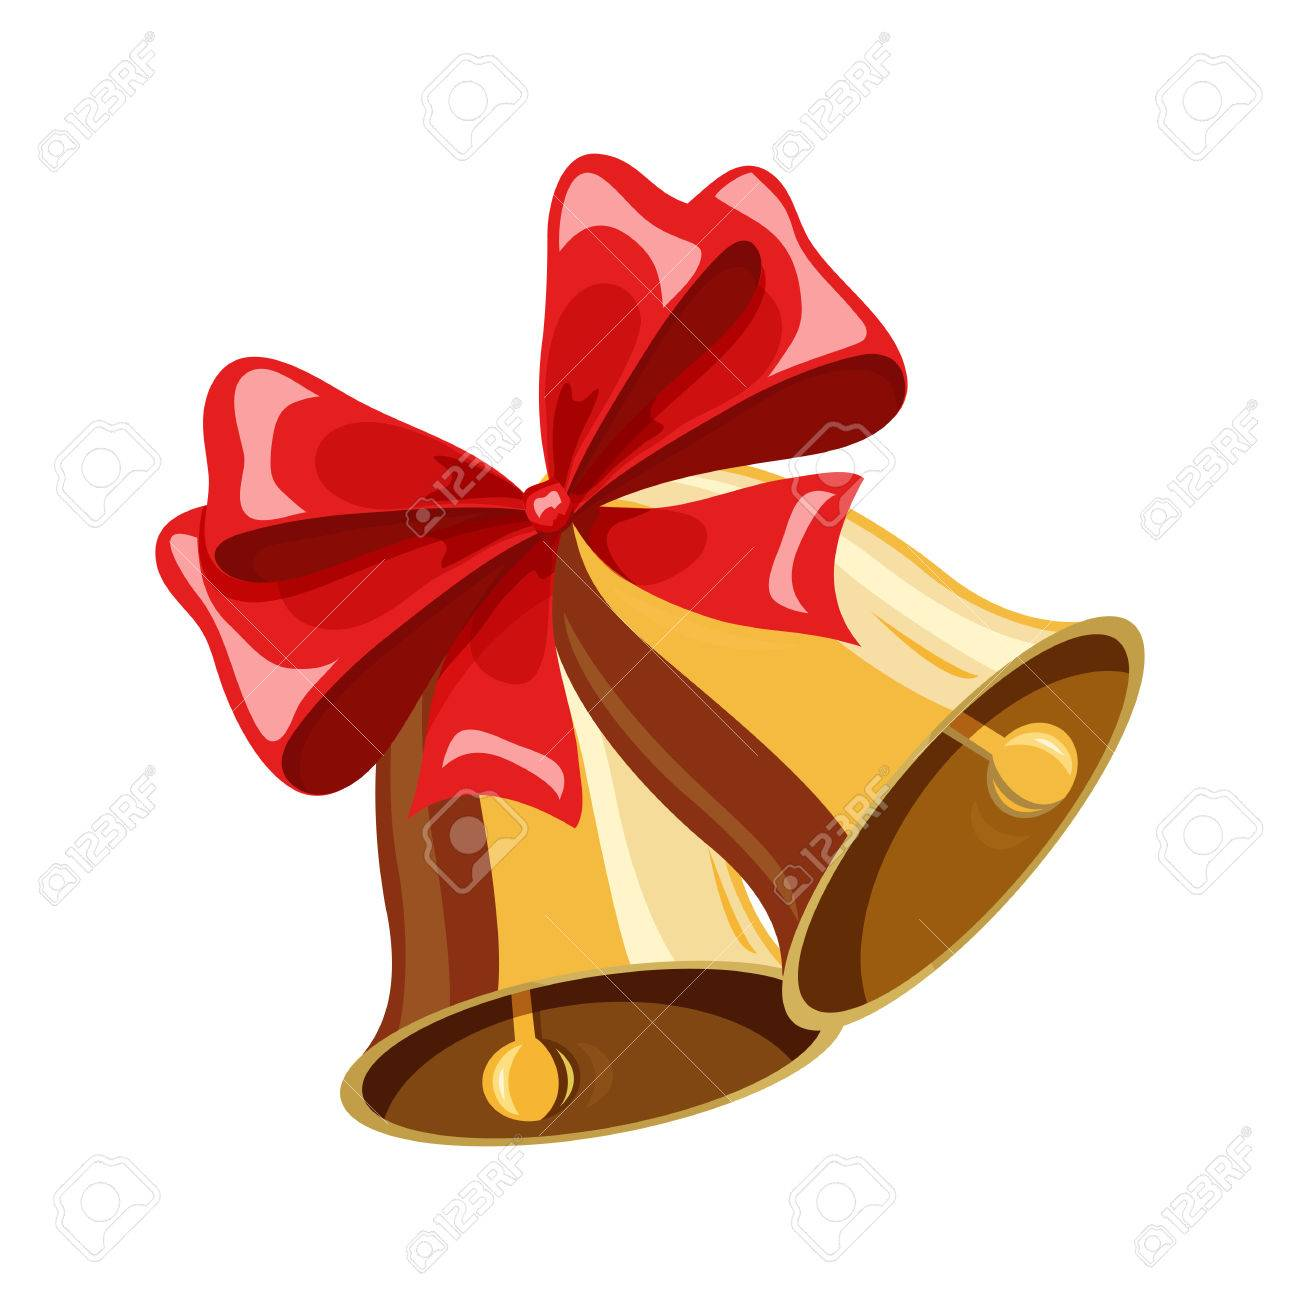 Christmas Bell.Christmas Bell Christmas Holiday Object Christmas Bell Vector